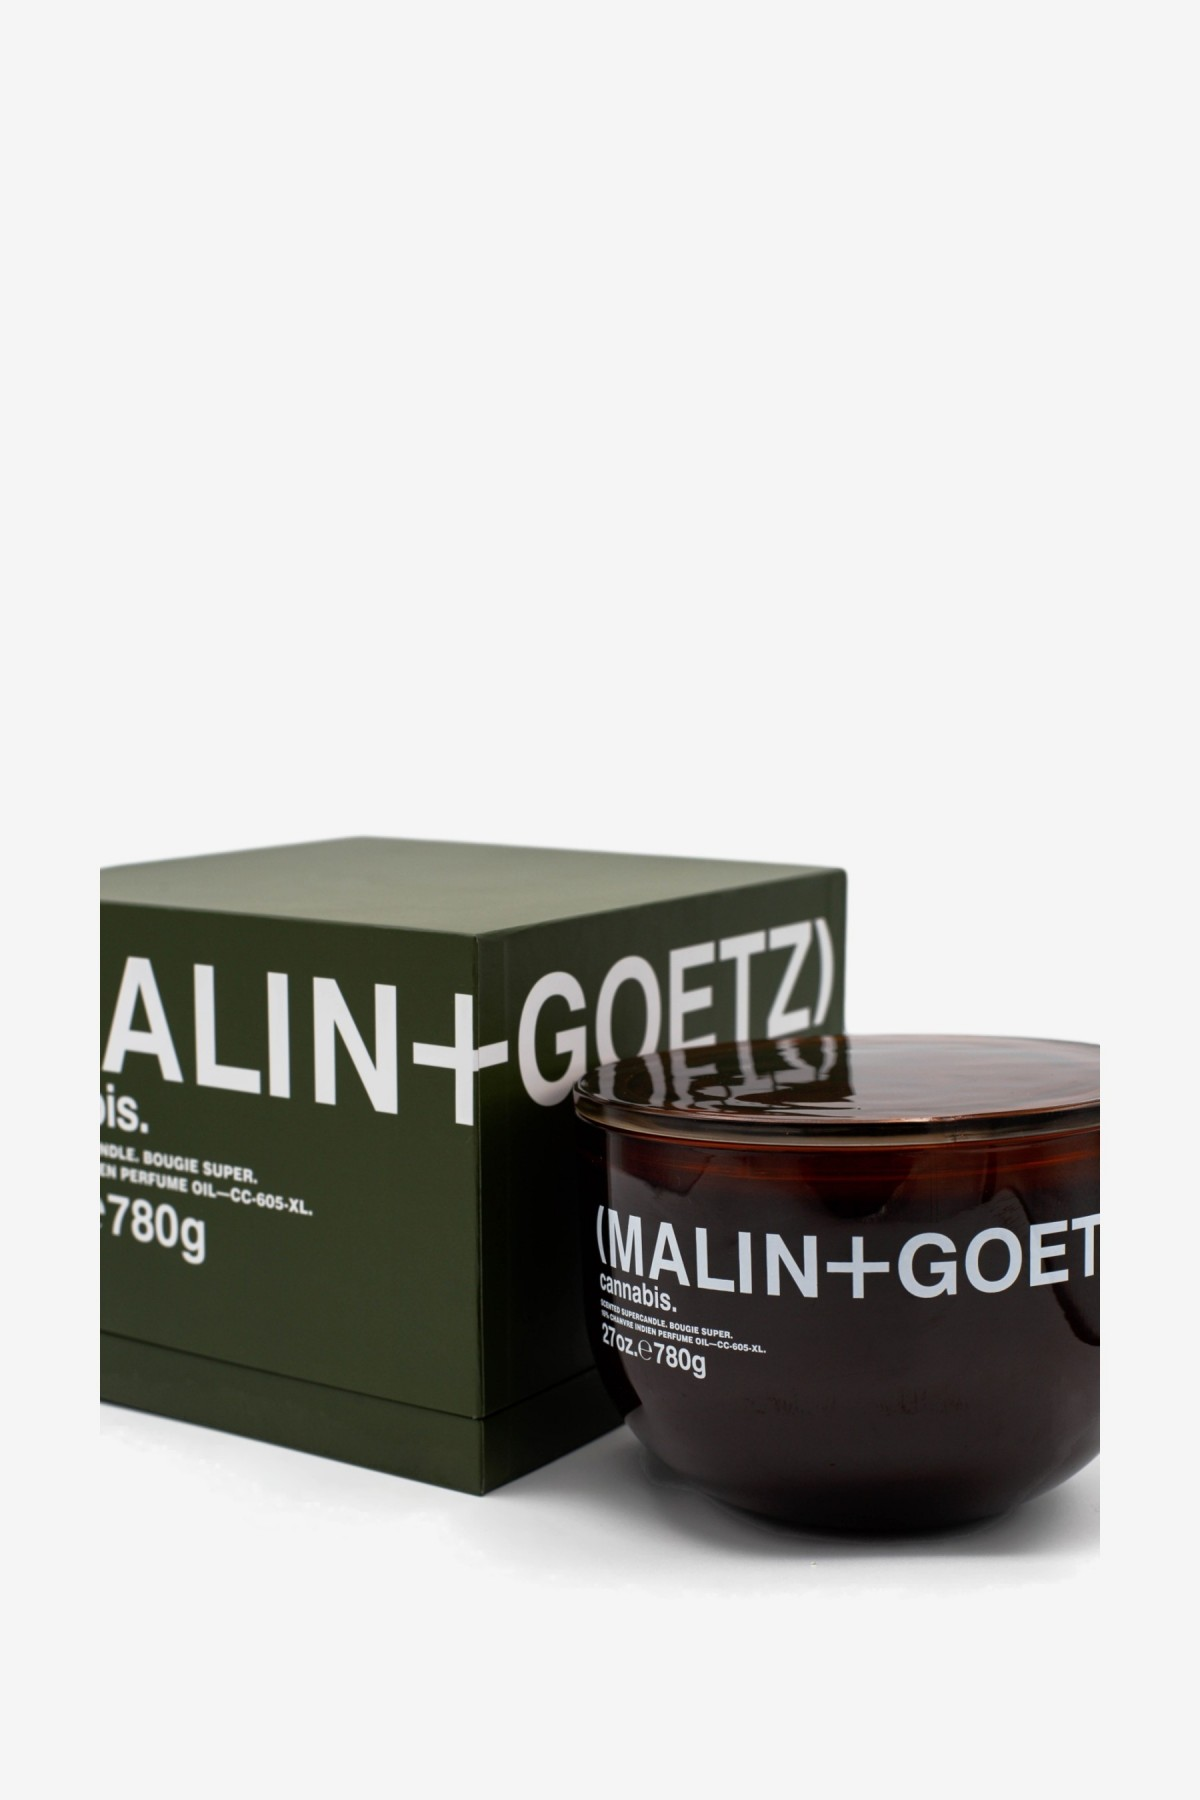 Malin+Goetz Cannabis Super Candle 780g in